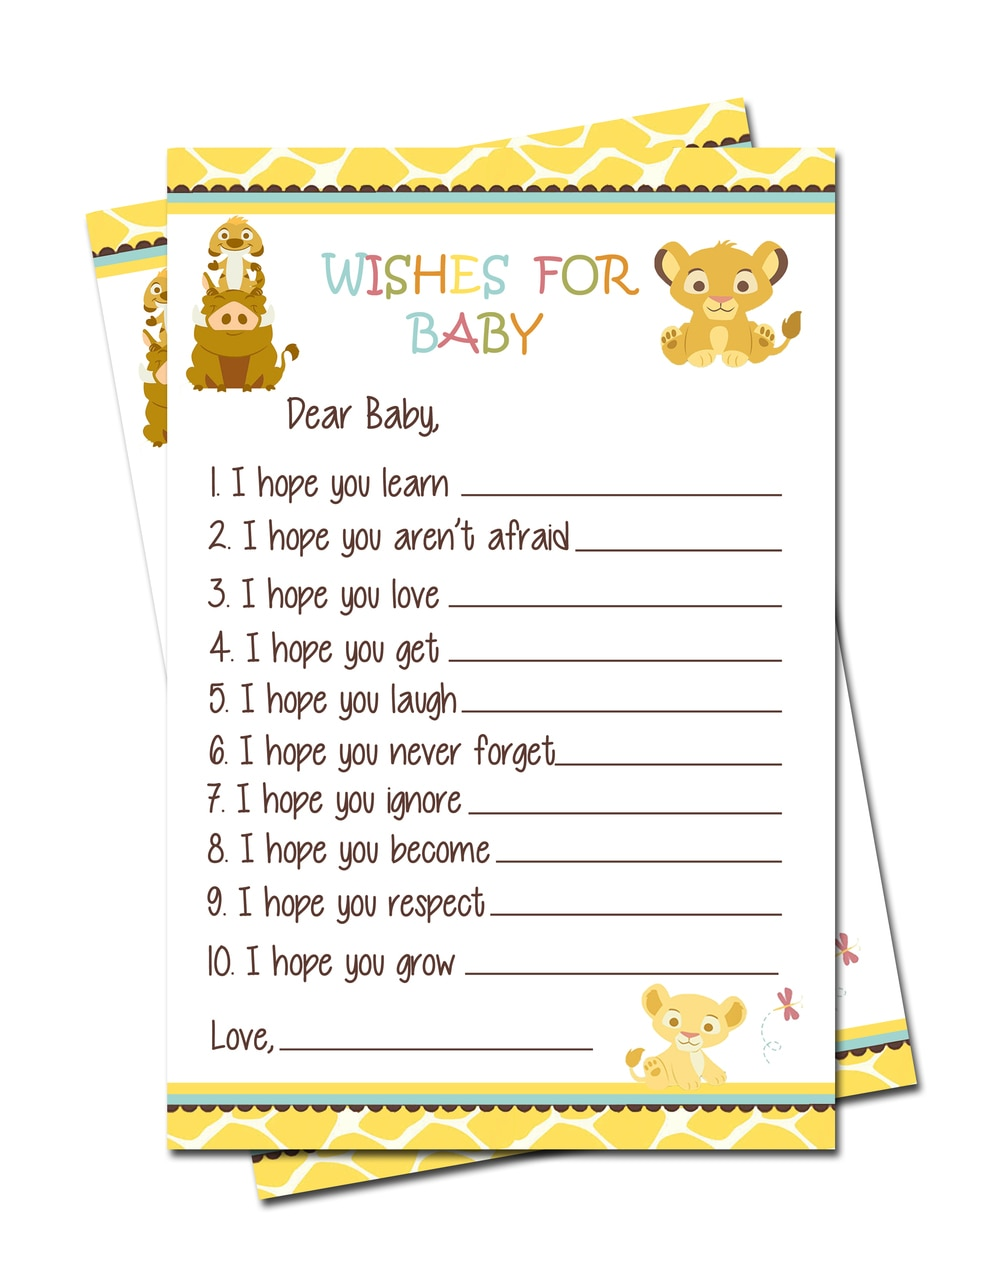 Full Size of Baby Shower:stylish Baby Shower Wishes Picture Inspirations Baby Shower Wishes Simba Lion King Baby Shower Wishes For Baby Games